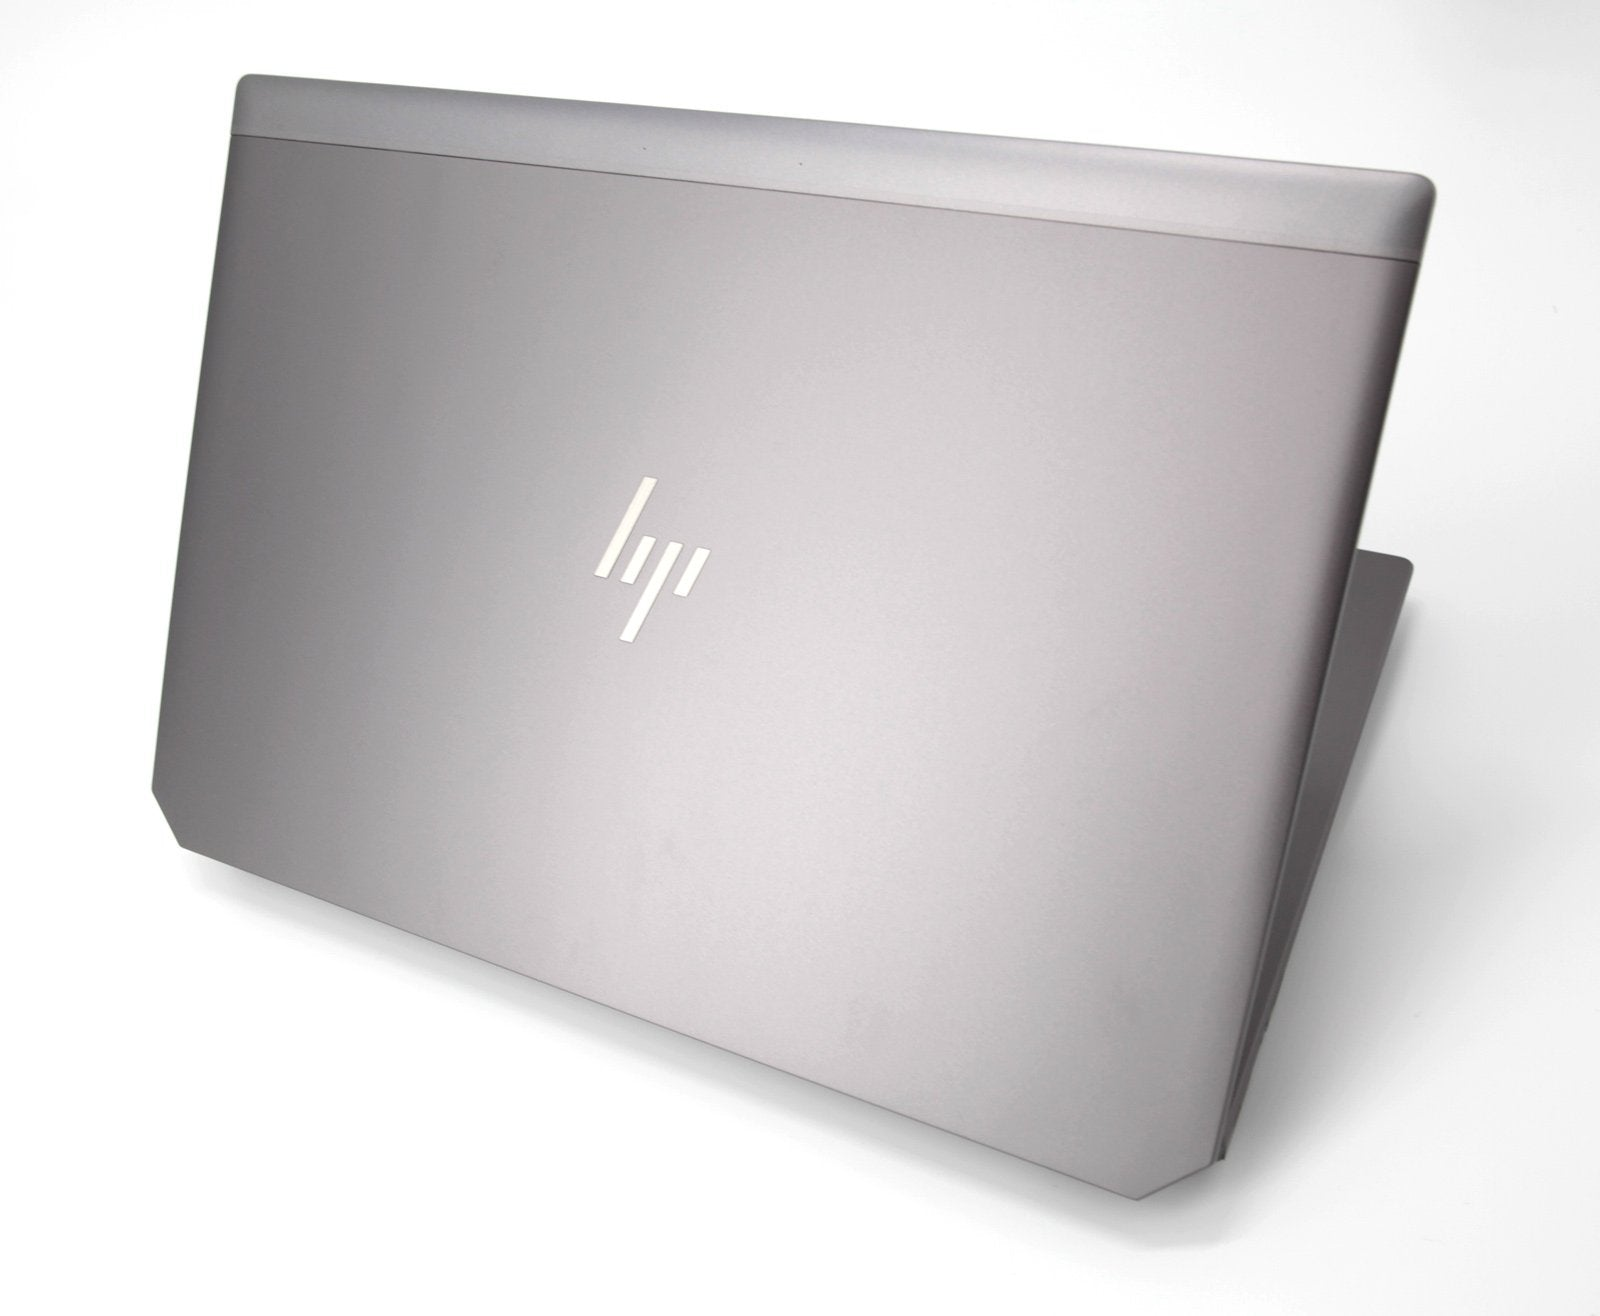 HP ZBook 15 G6 Laptop: Core i7-9850H, 32GB RAM, 512GB SSD, T1000, Warranty - CruiseTech